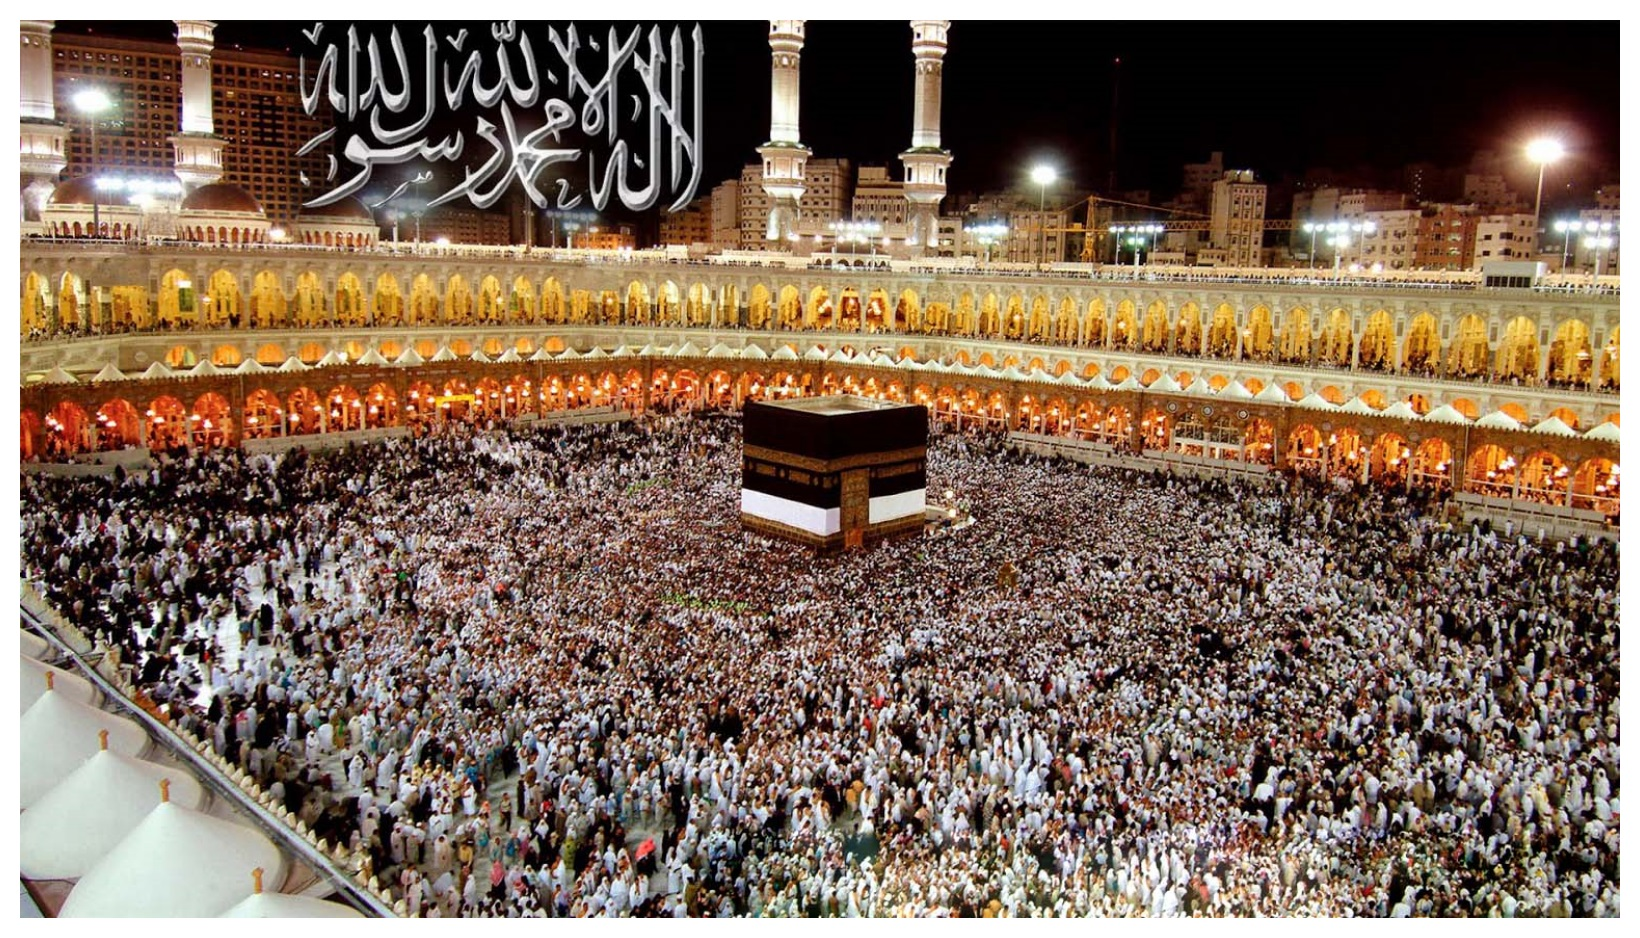 Kaaba Wallpaper Hd Latest Most Islamic High Definition Wallpapers For Desktop